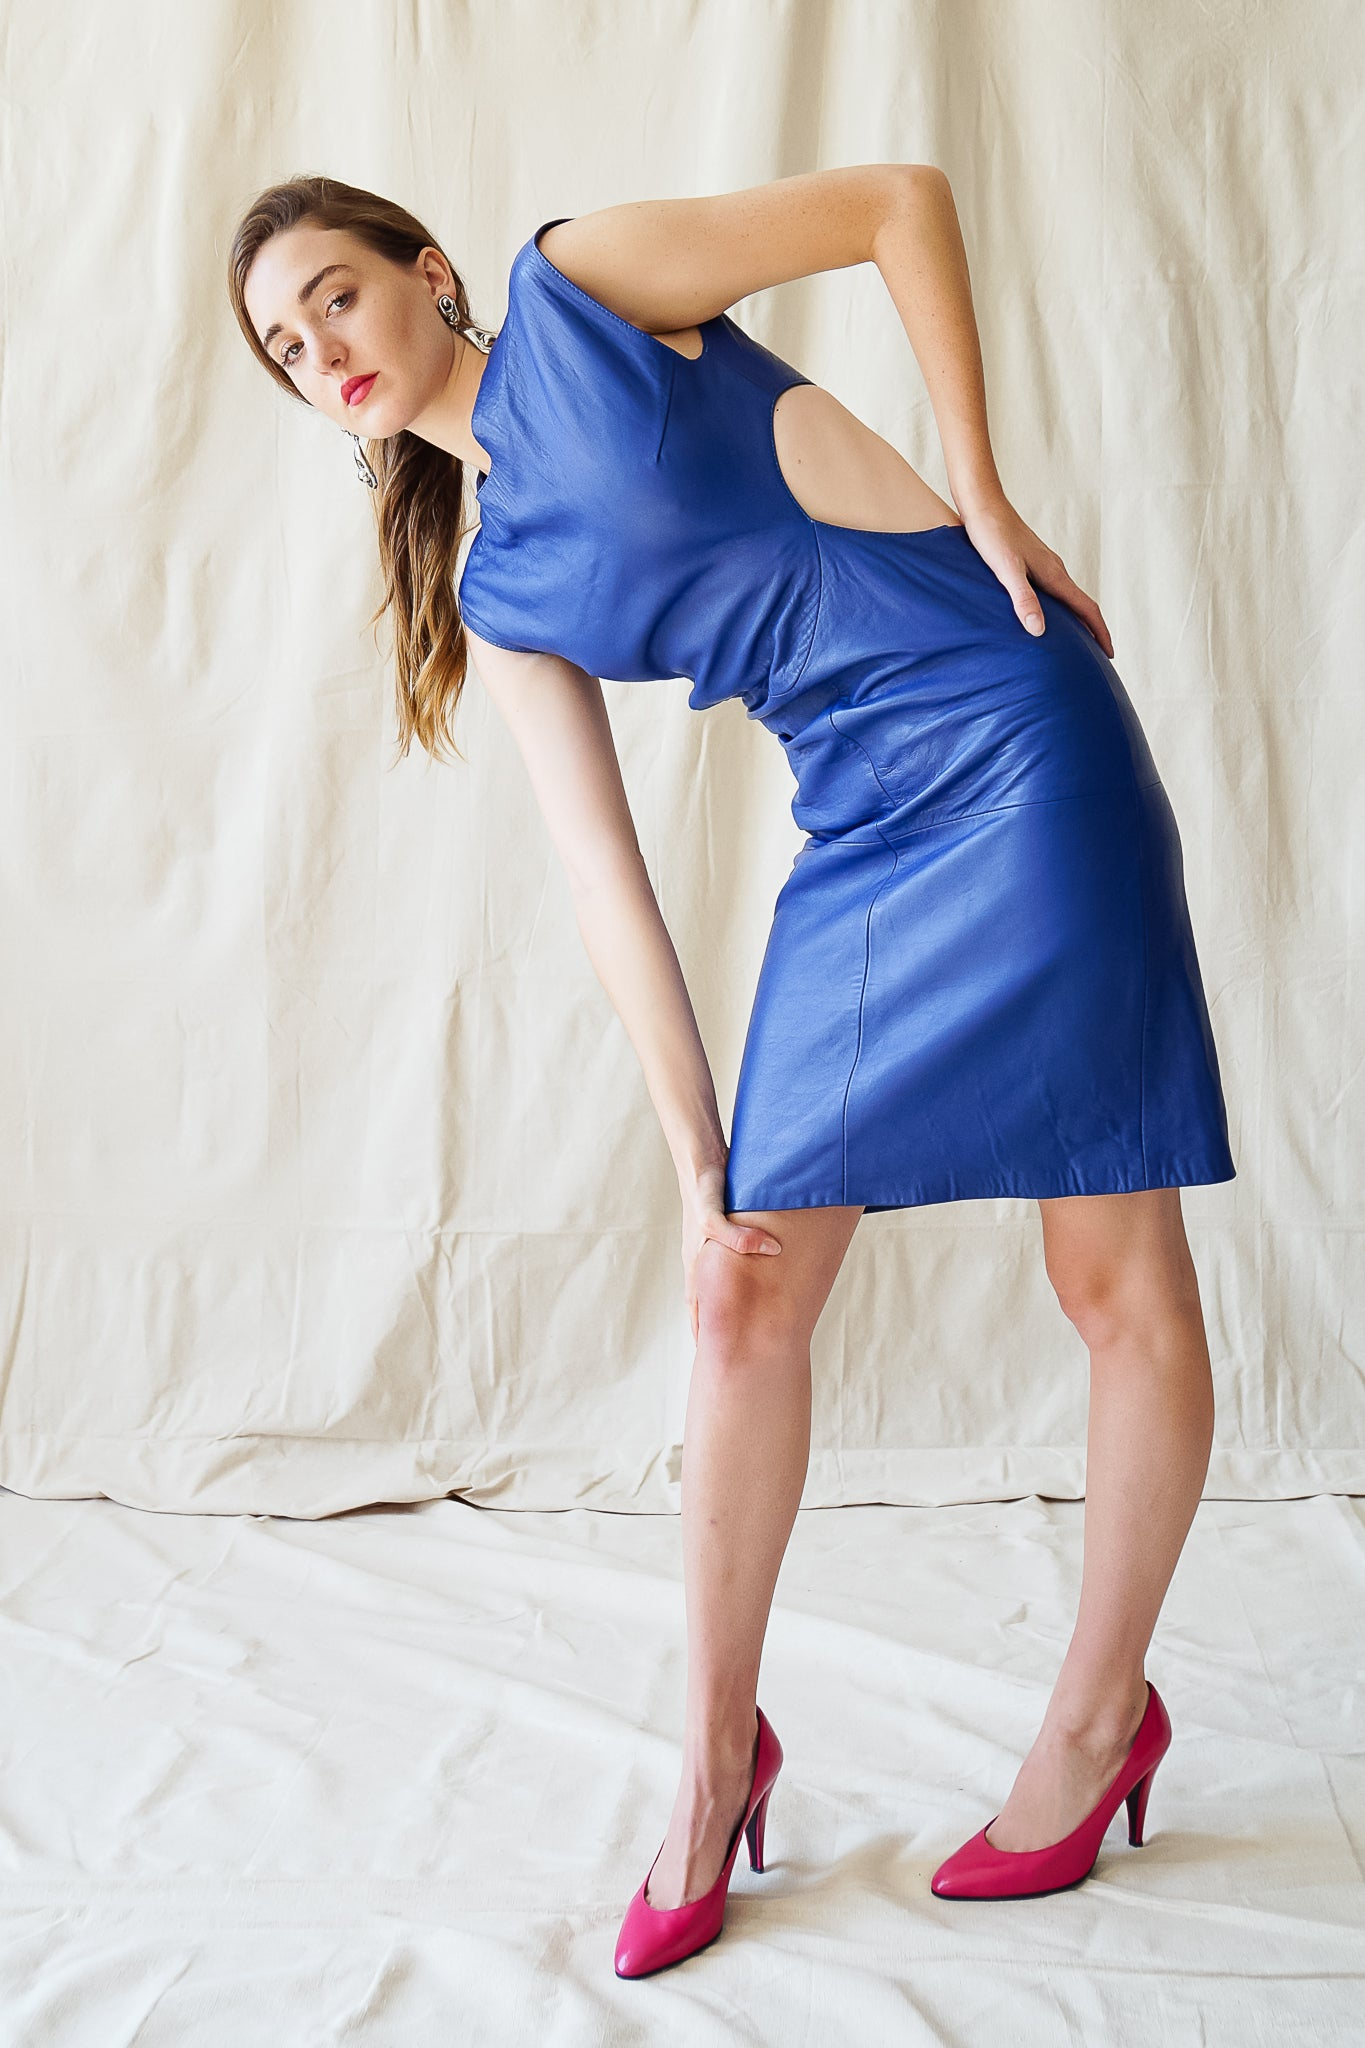 Recess Vintage Los Angeles Girl in Climax blue leather dress